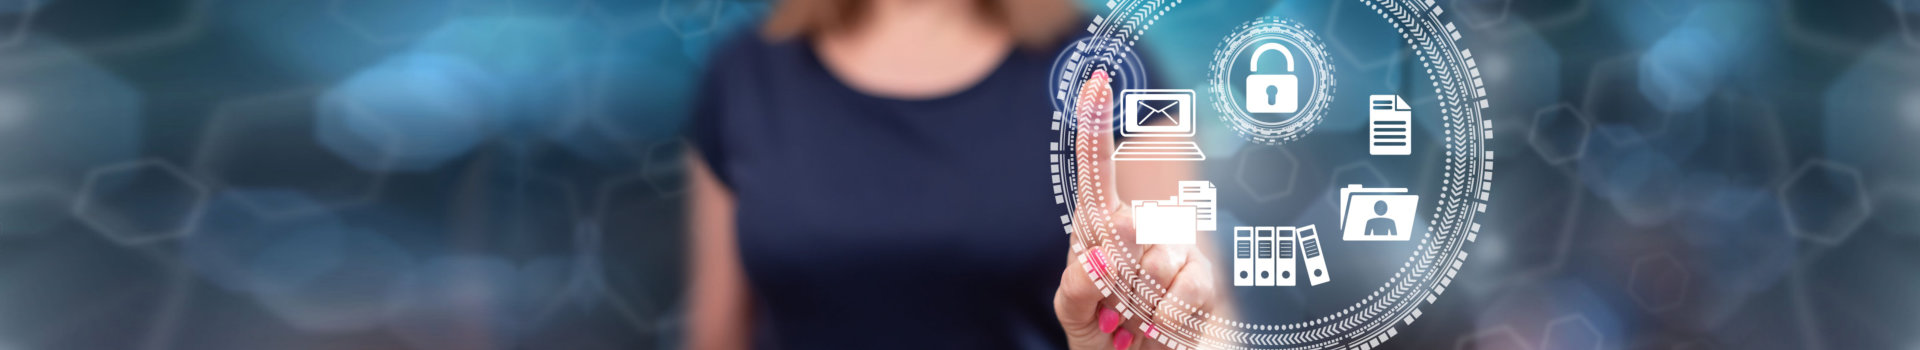 Woman touching a data protection concept on a touch screen with her finger